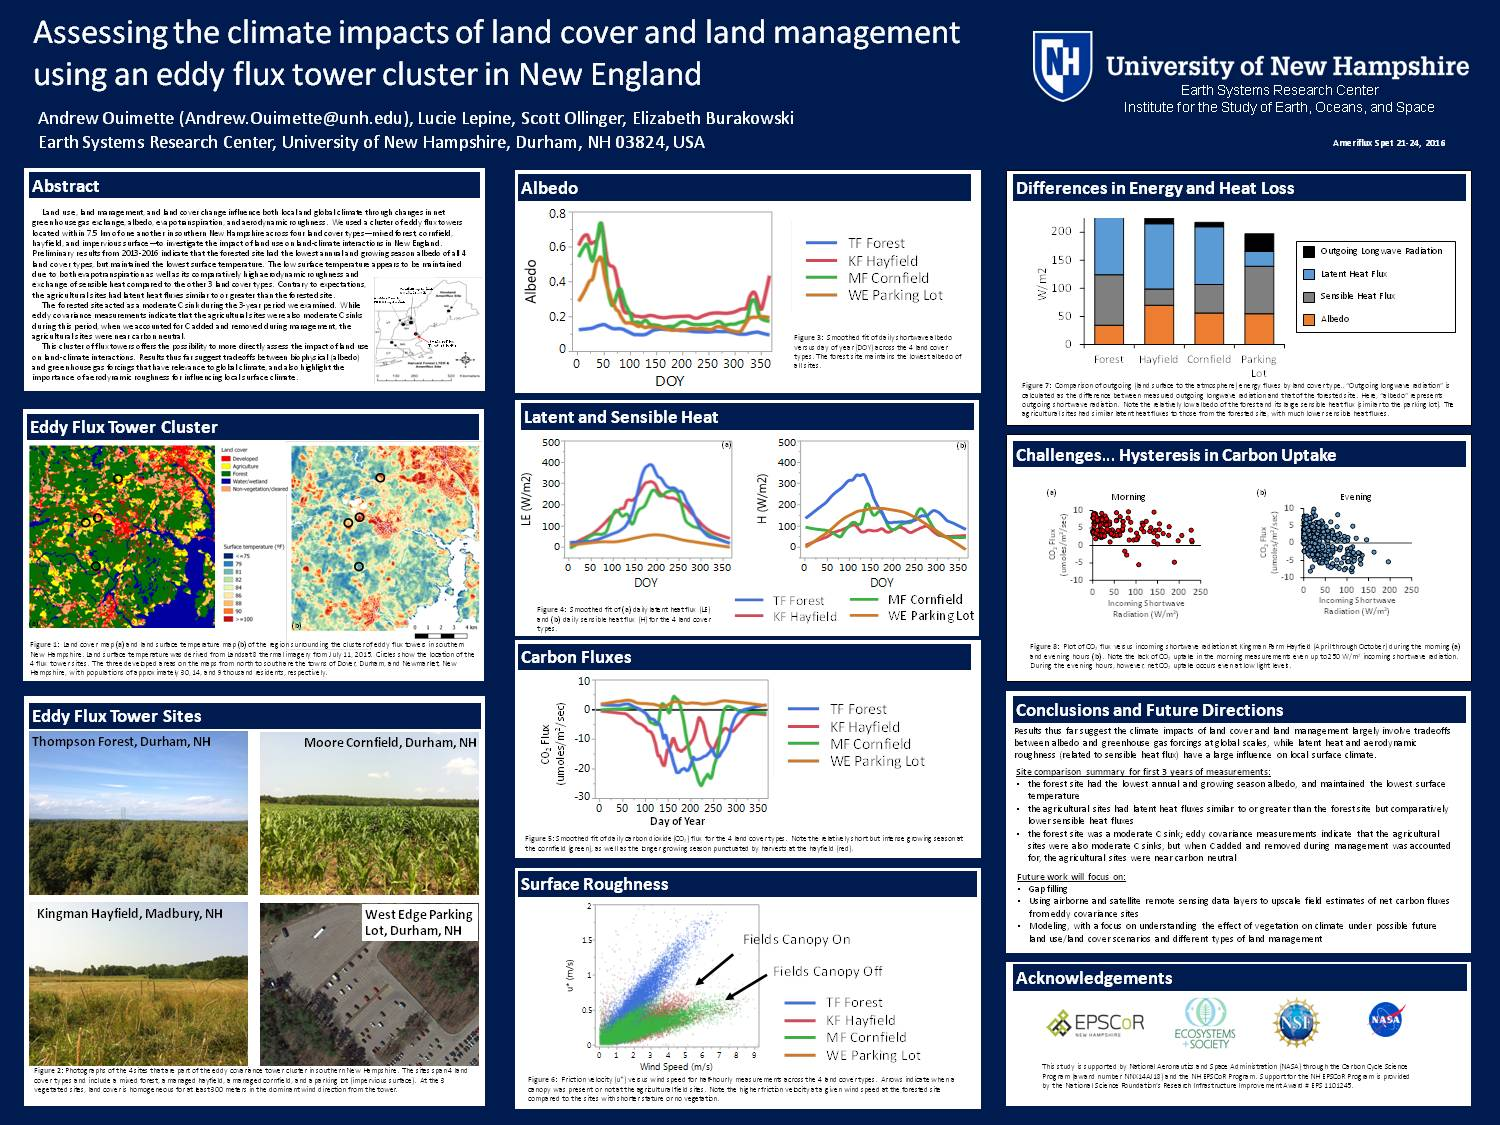 Assessing The Climate Impacts Of Land Cover And Land Management Using An Eddy Flux Tower Cluster In New England by aouimette